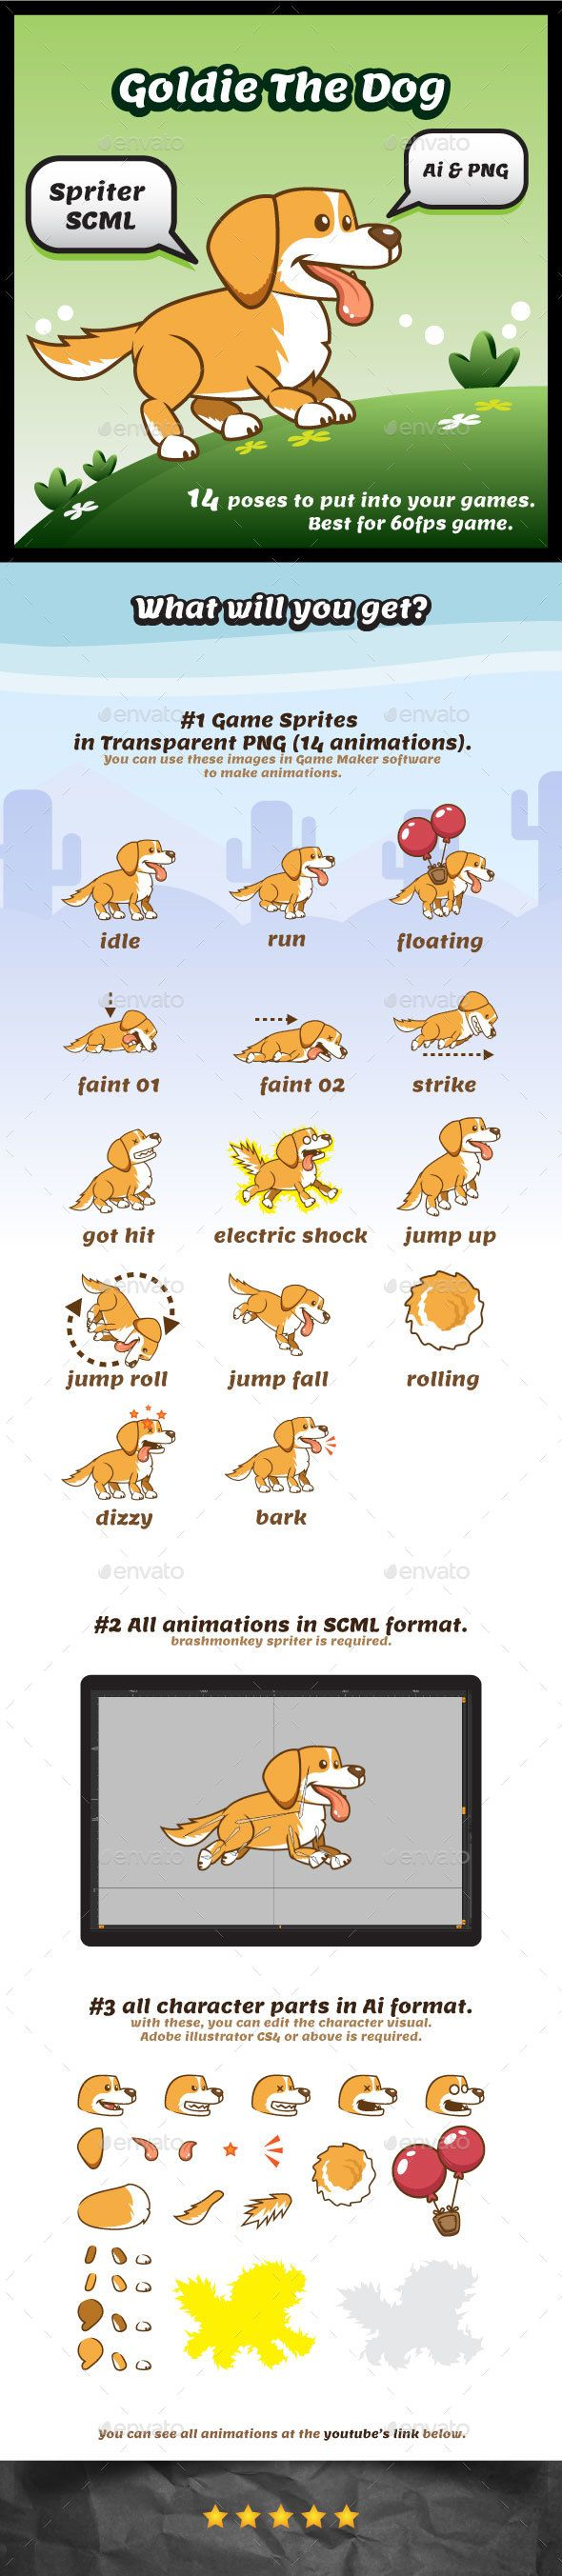 Goldie the Dog Game Character Sprites